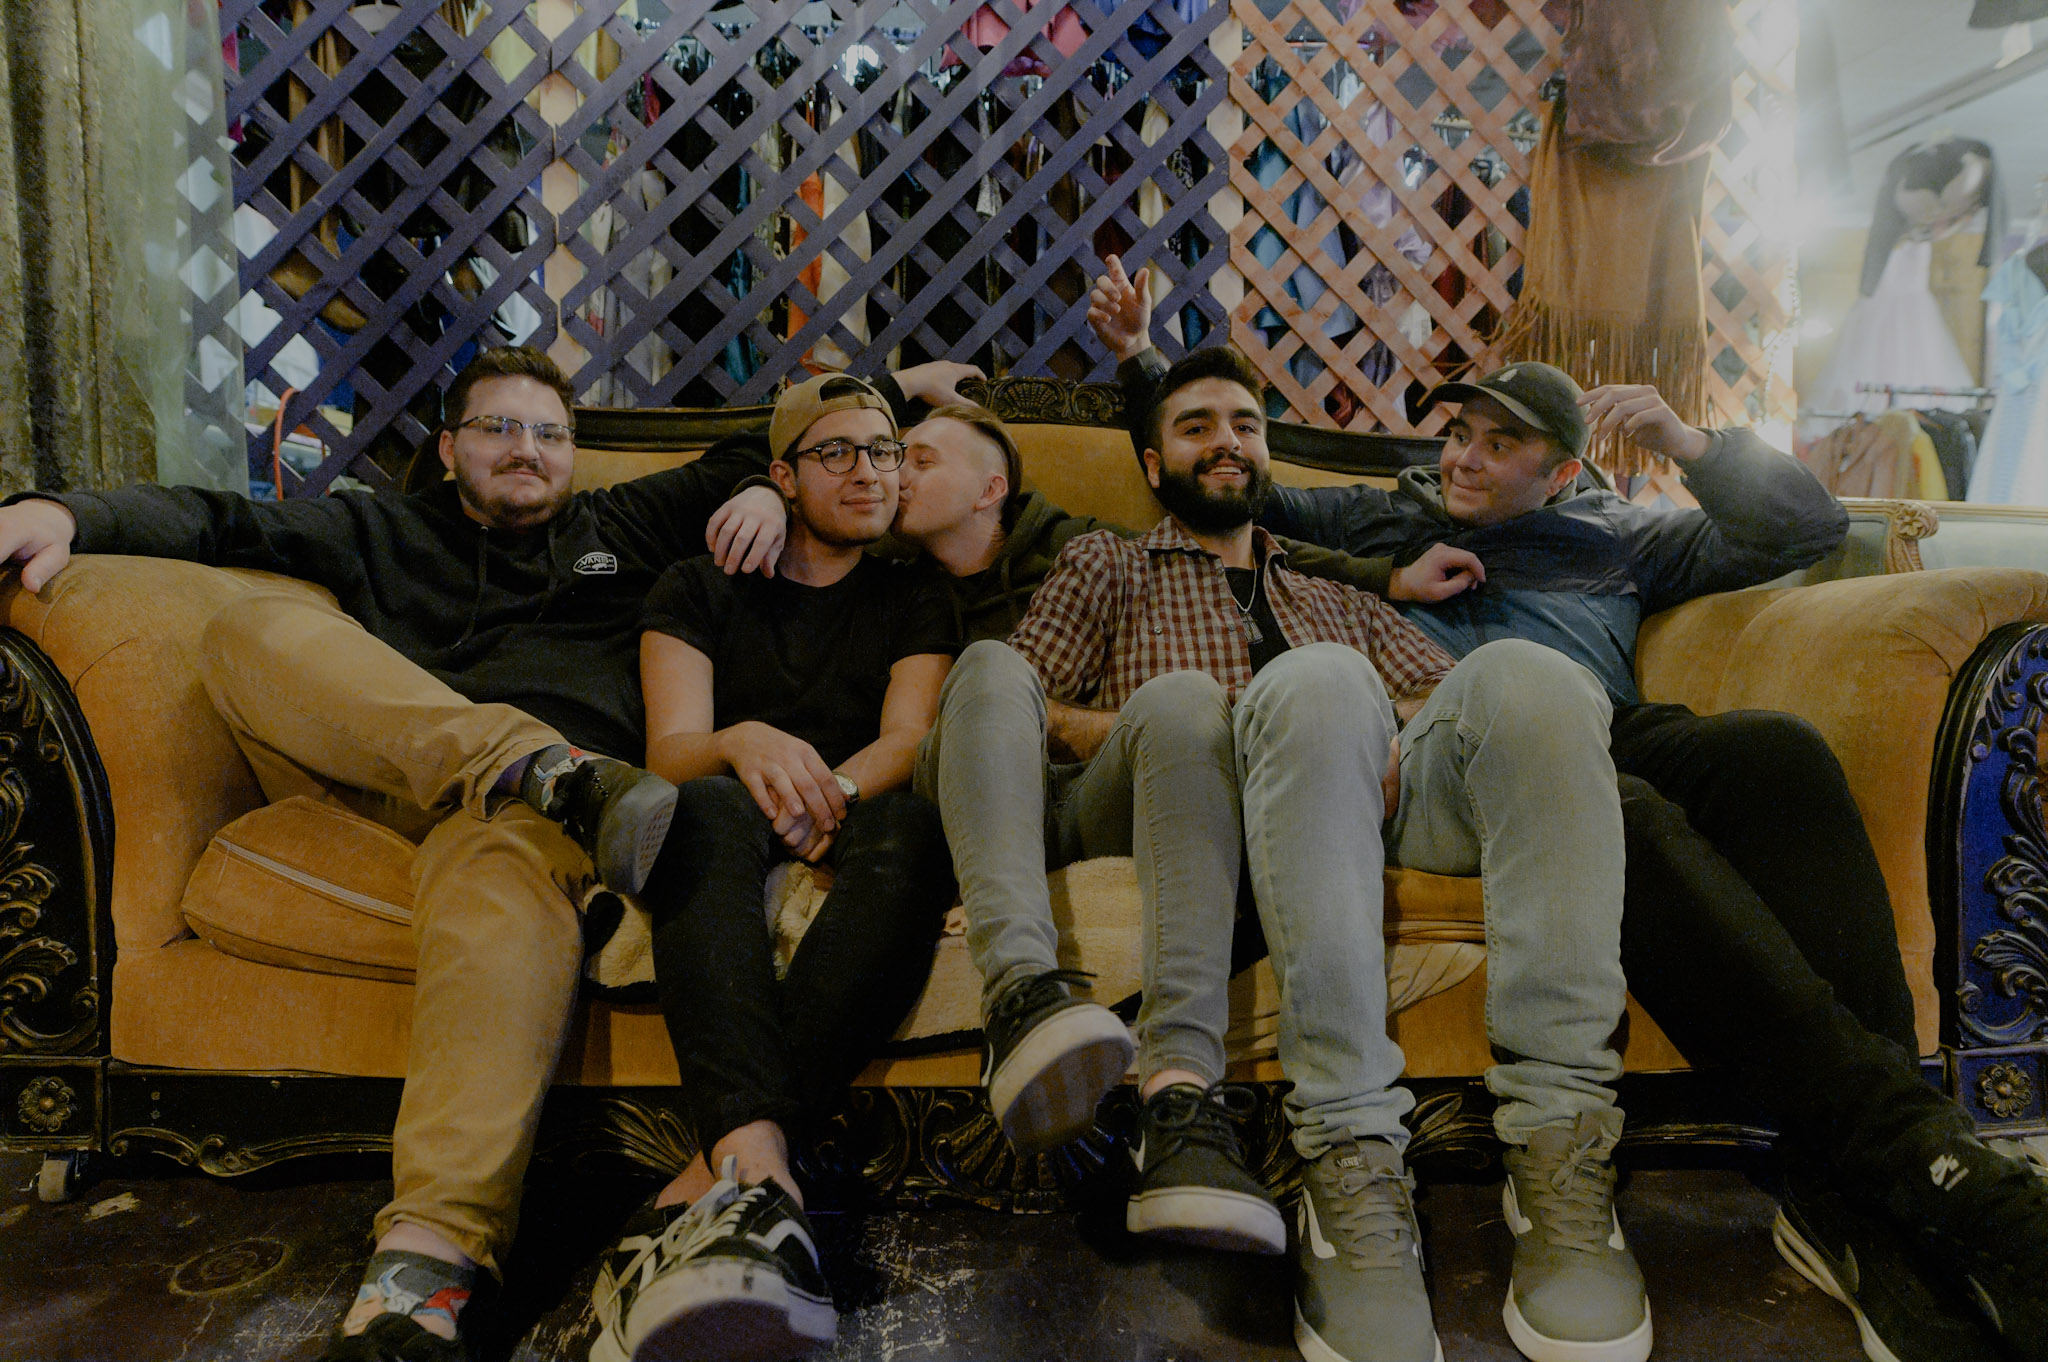 PREMIERE: Right On, Kid will be your new favorite band with 'When Words Are Enough'